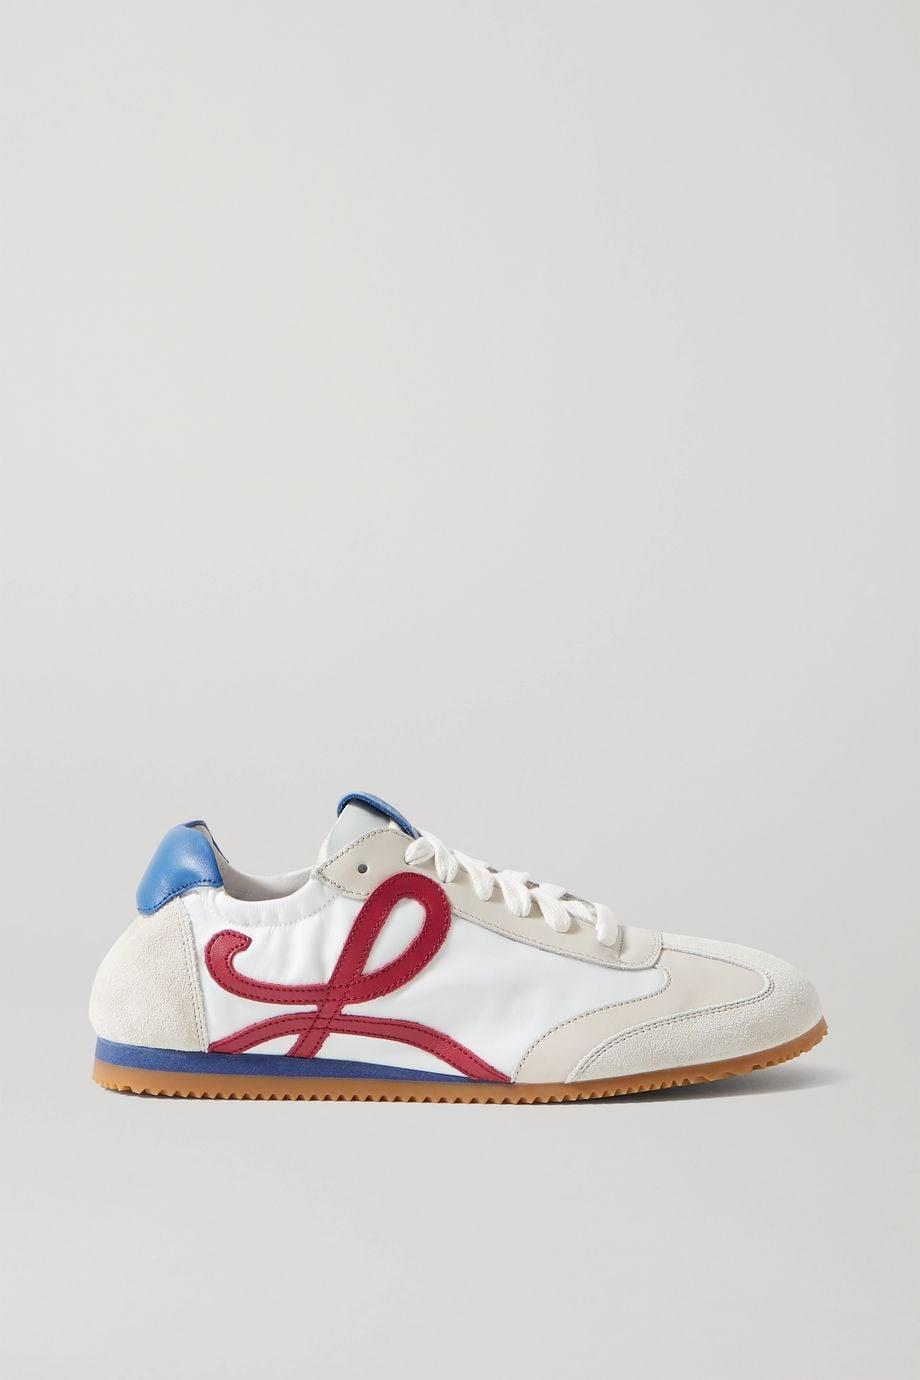 "<p><span>Loewe White Ballet Runner Shell</span> ($590)</p> <p>""What can i say - they have my initial on them! These sneakers are an investment, but the quality and design can't be beat."" - Lisa Sugar, president and founder, POPSUGAR</p>"